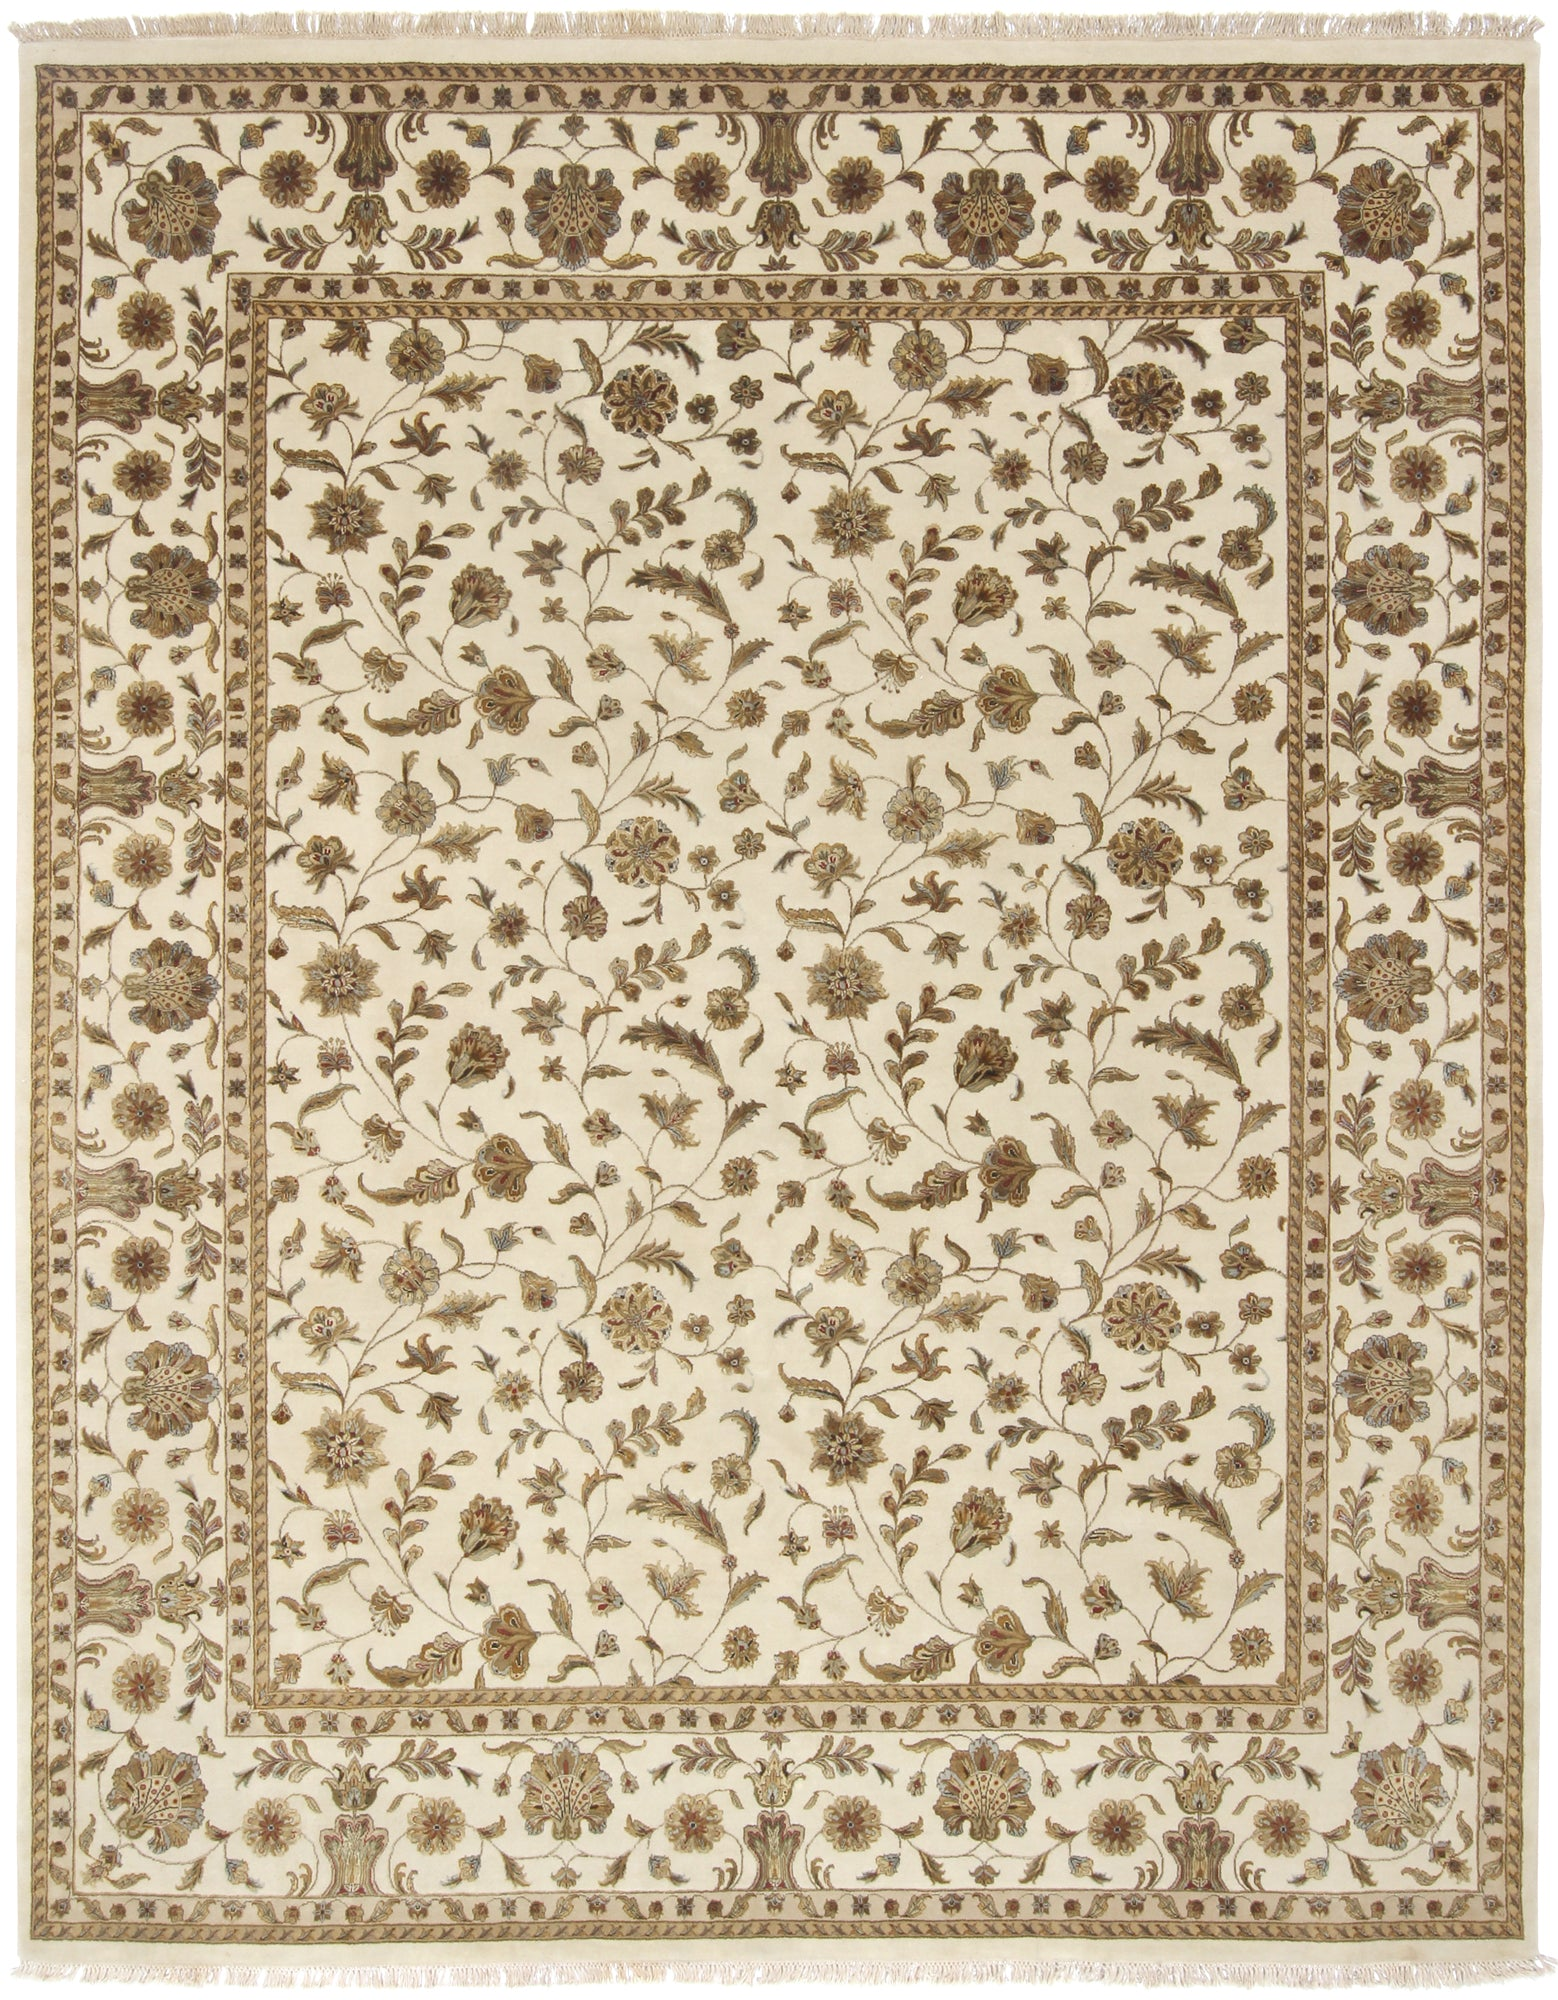 Tabriz Design Ivory Rug Wool & Silk